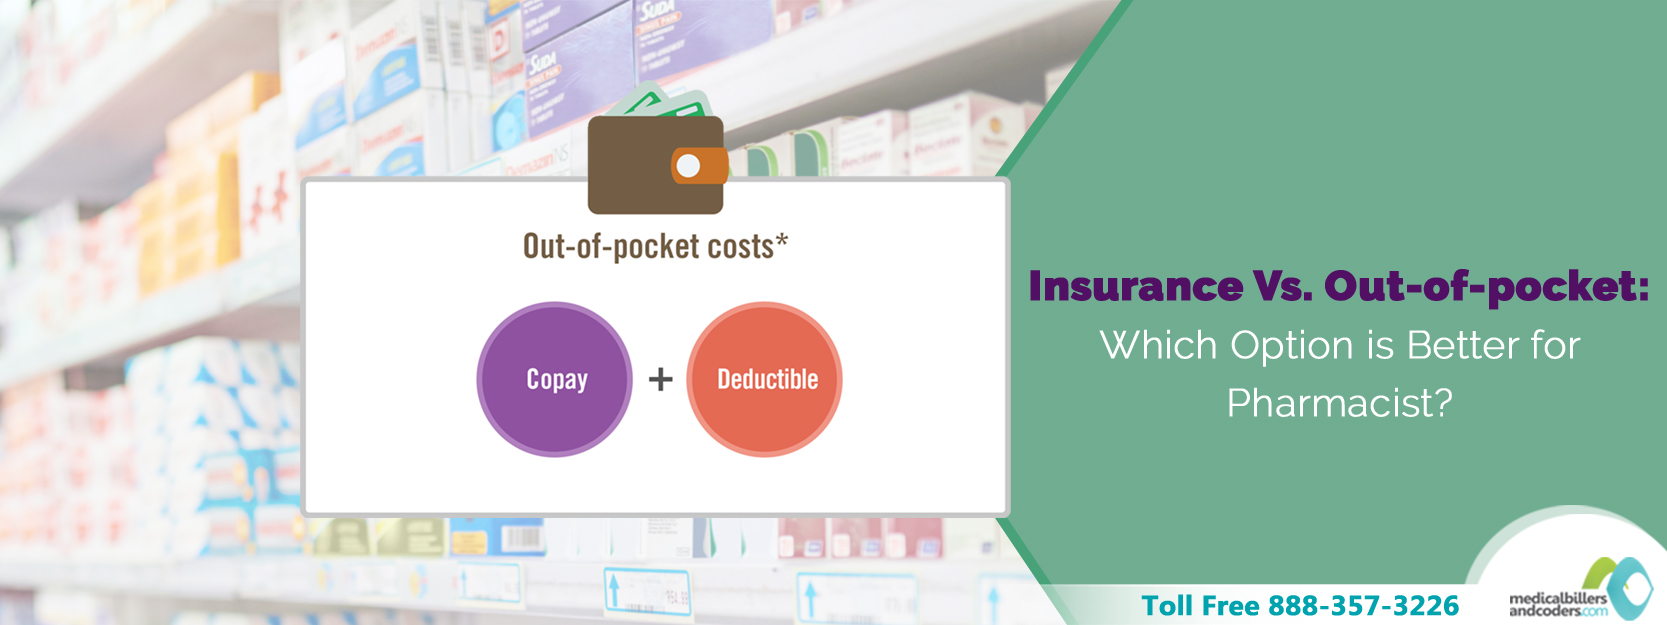 Insurance-vs-Out-of-pocket-Which-Option-is-Better-for-Pharmacist.jpg